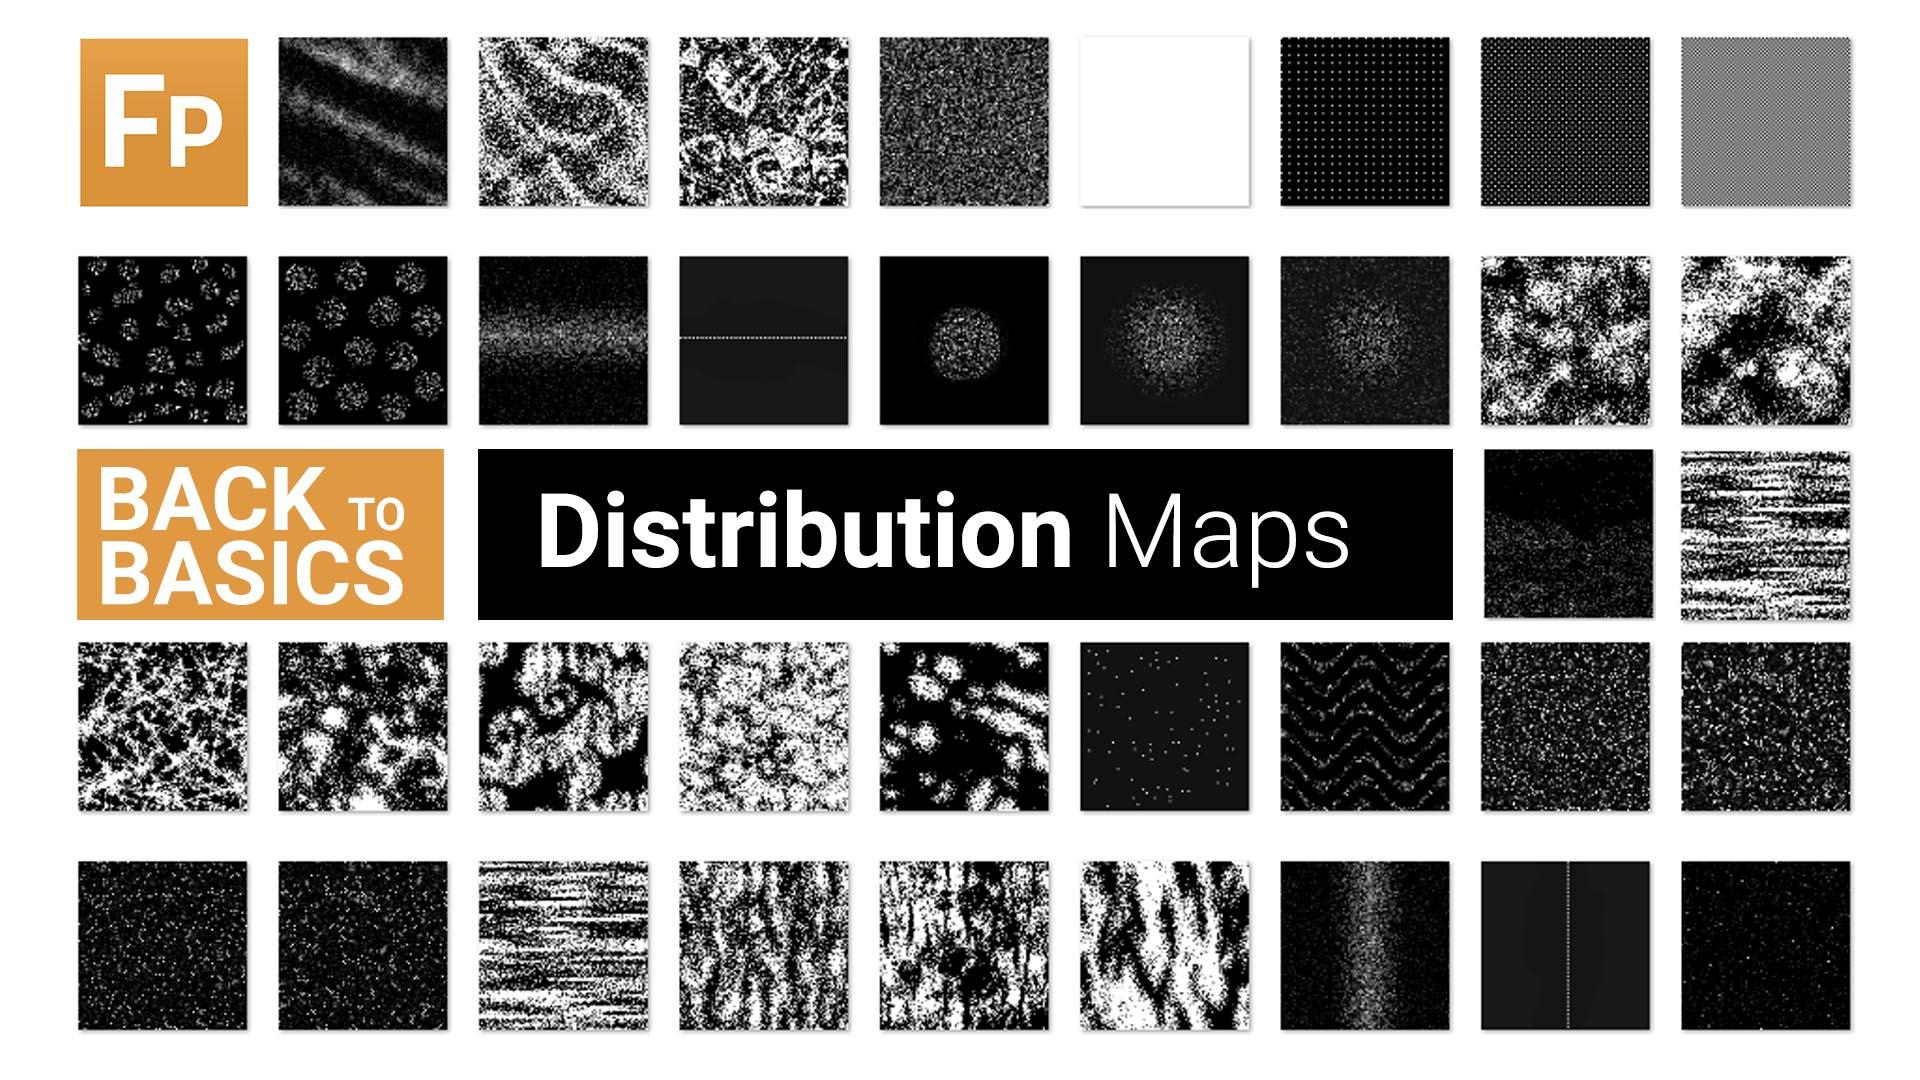 Back to Basics: Distribution Maps